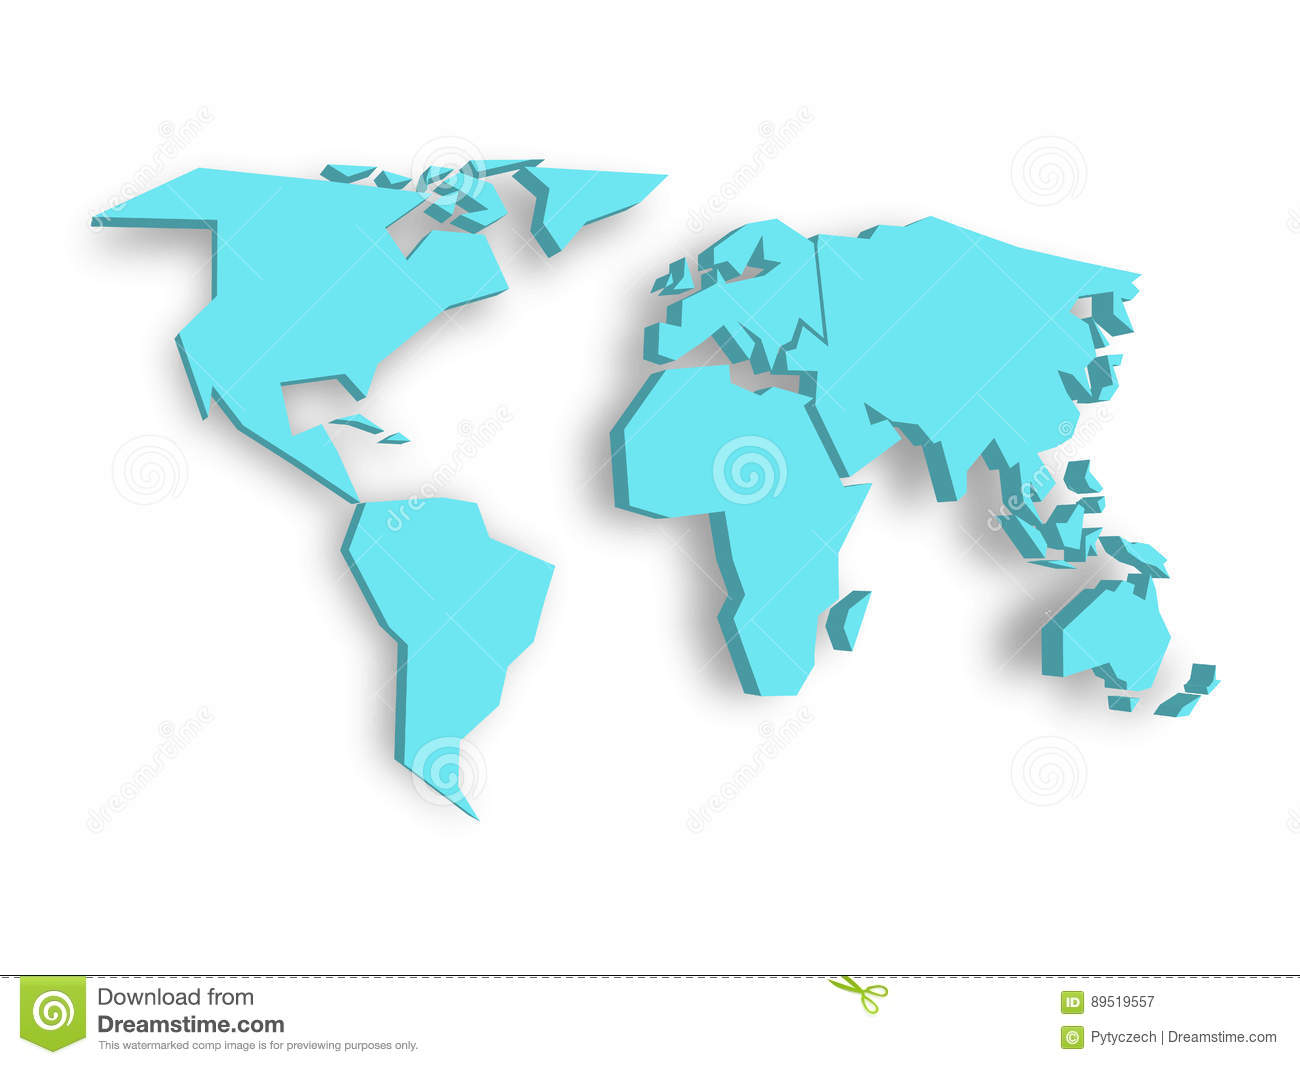 Blue 3d map of world with dropped shadow on background worldwide worldwide theme wallpaper download comp gumiabroncs Images